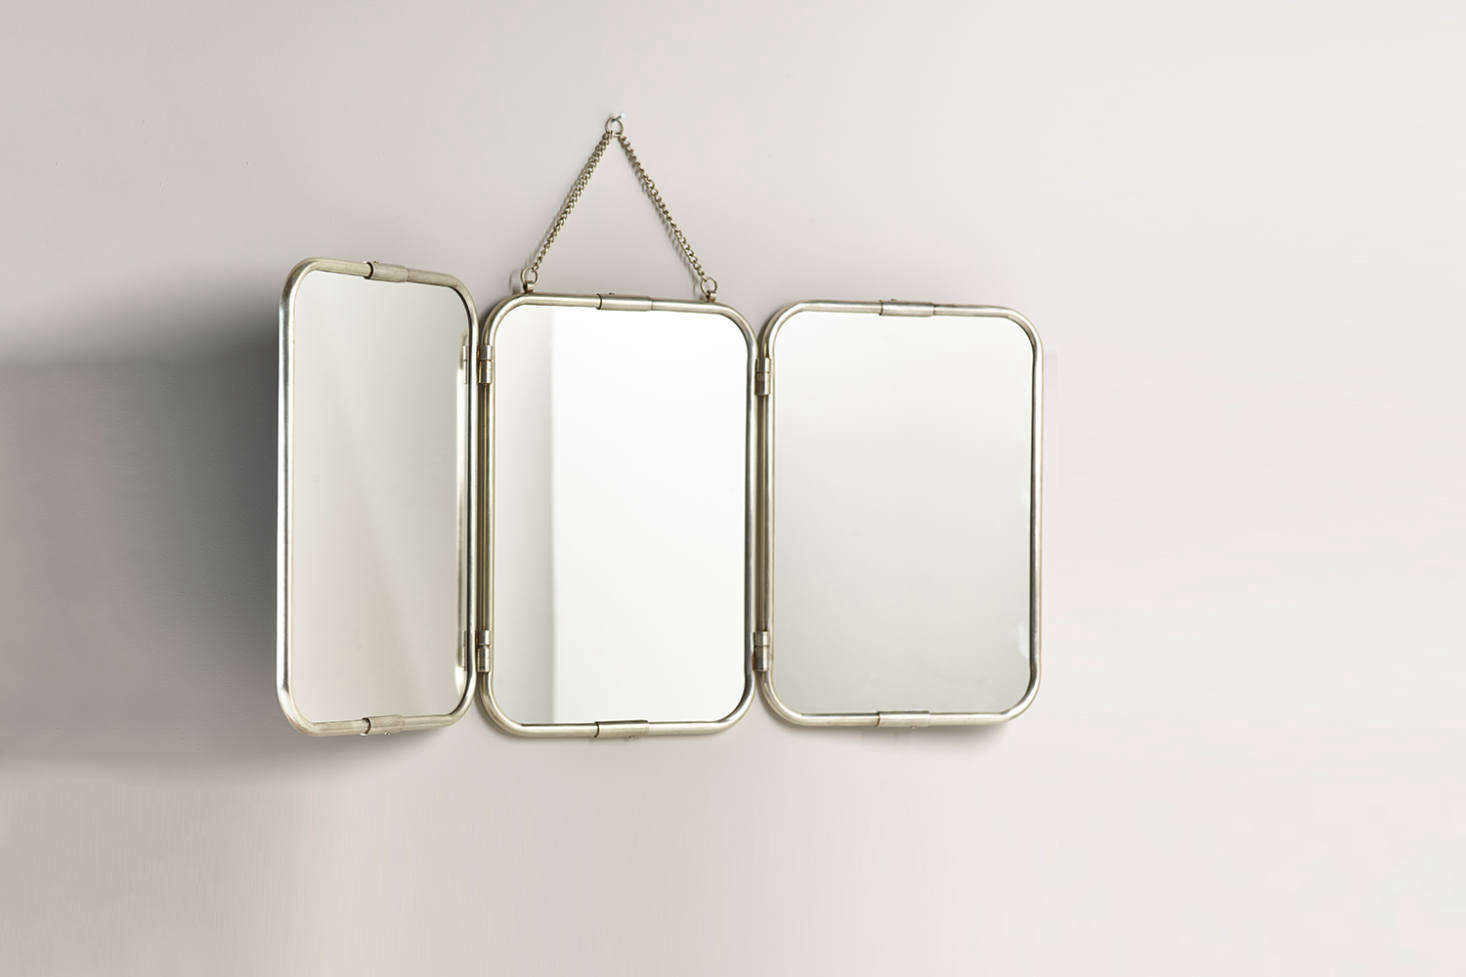 The Large French Triple Mirror is an oversize version of the small vintage mirror seen on the bedside table here. This one is £5 at Cox & Cox. For more mirrors on chains, see our post on The Organized Home  Easy Pieces: Square and Rectangular Shaped Hanging Mirrors.